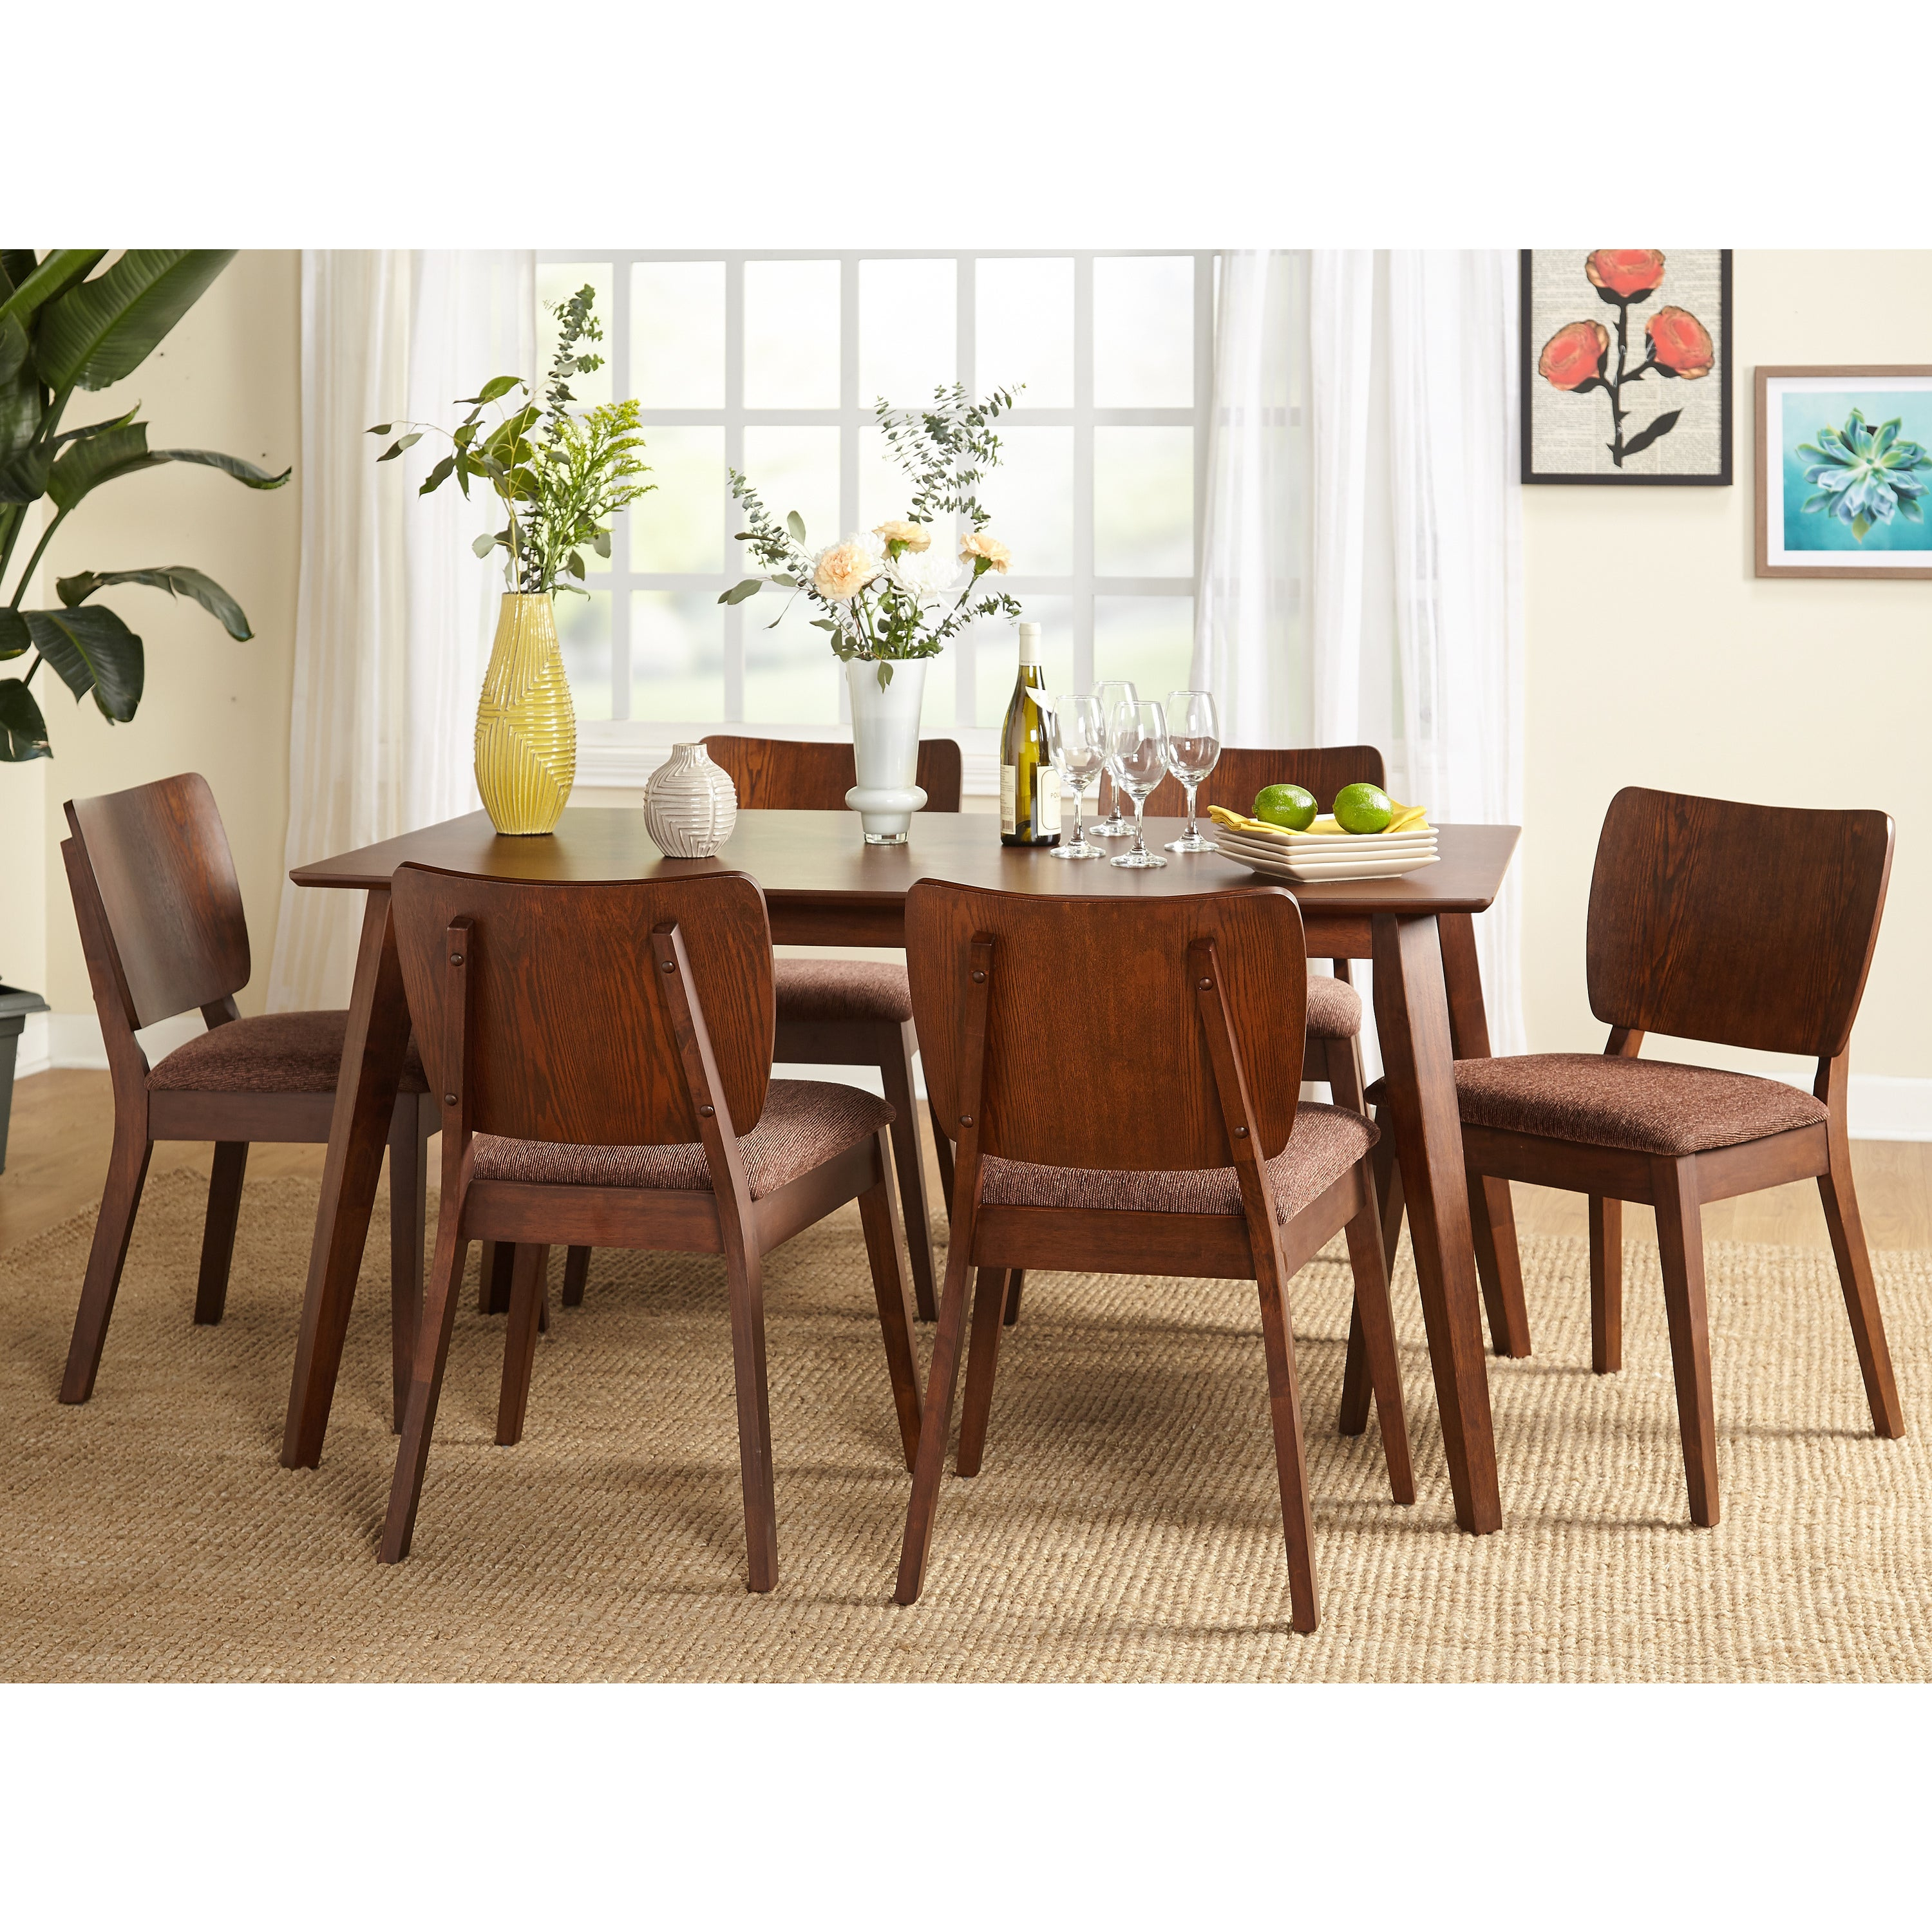 Goodman 5 Piece Solid Wood Dining Sets (Set Of 5) Pertaining To Well Liked Buy 5 Piece Sets, Wood Kitchen & Dining Room Sets Online At (View 7 of 20)